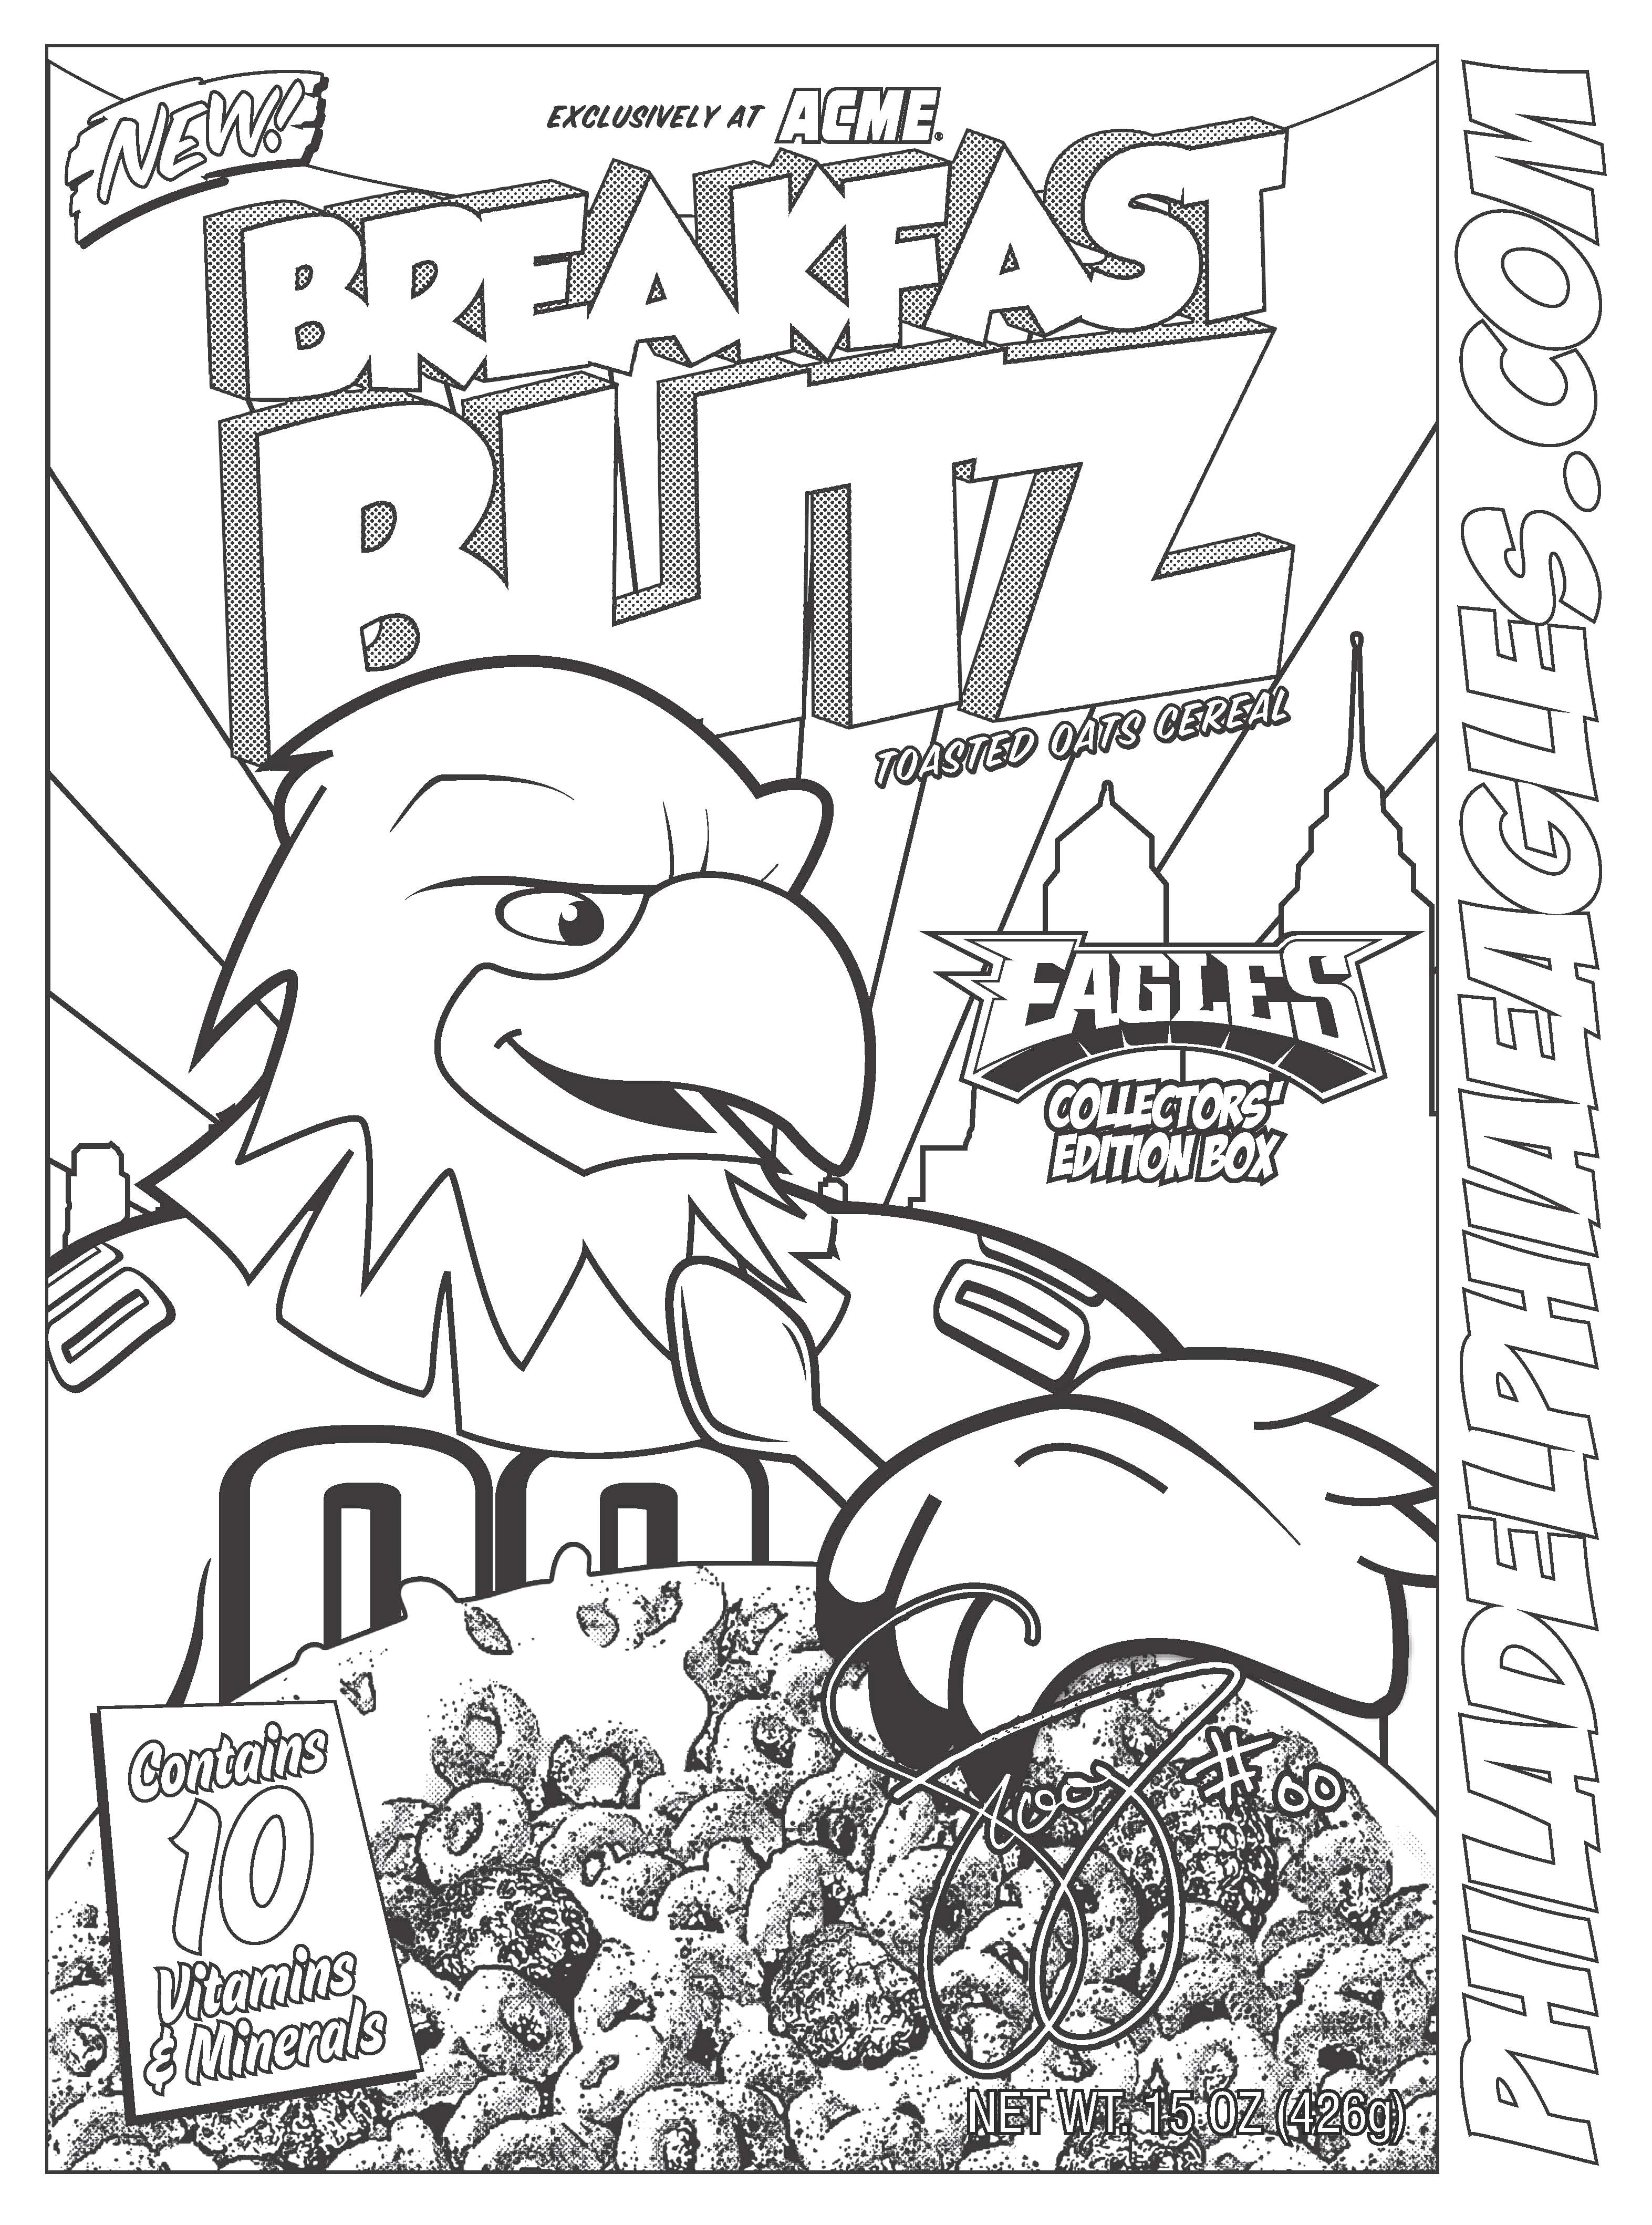 seattle seahawks color pages seattle seahawks logo drawing at getdrawings free download seattle color seahawks pages